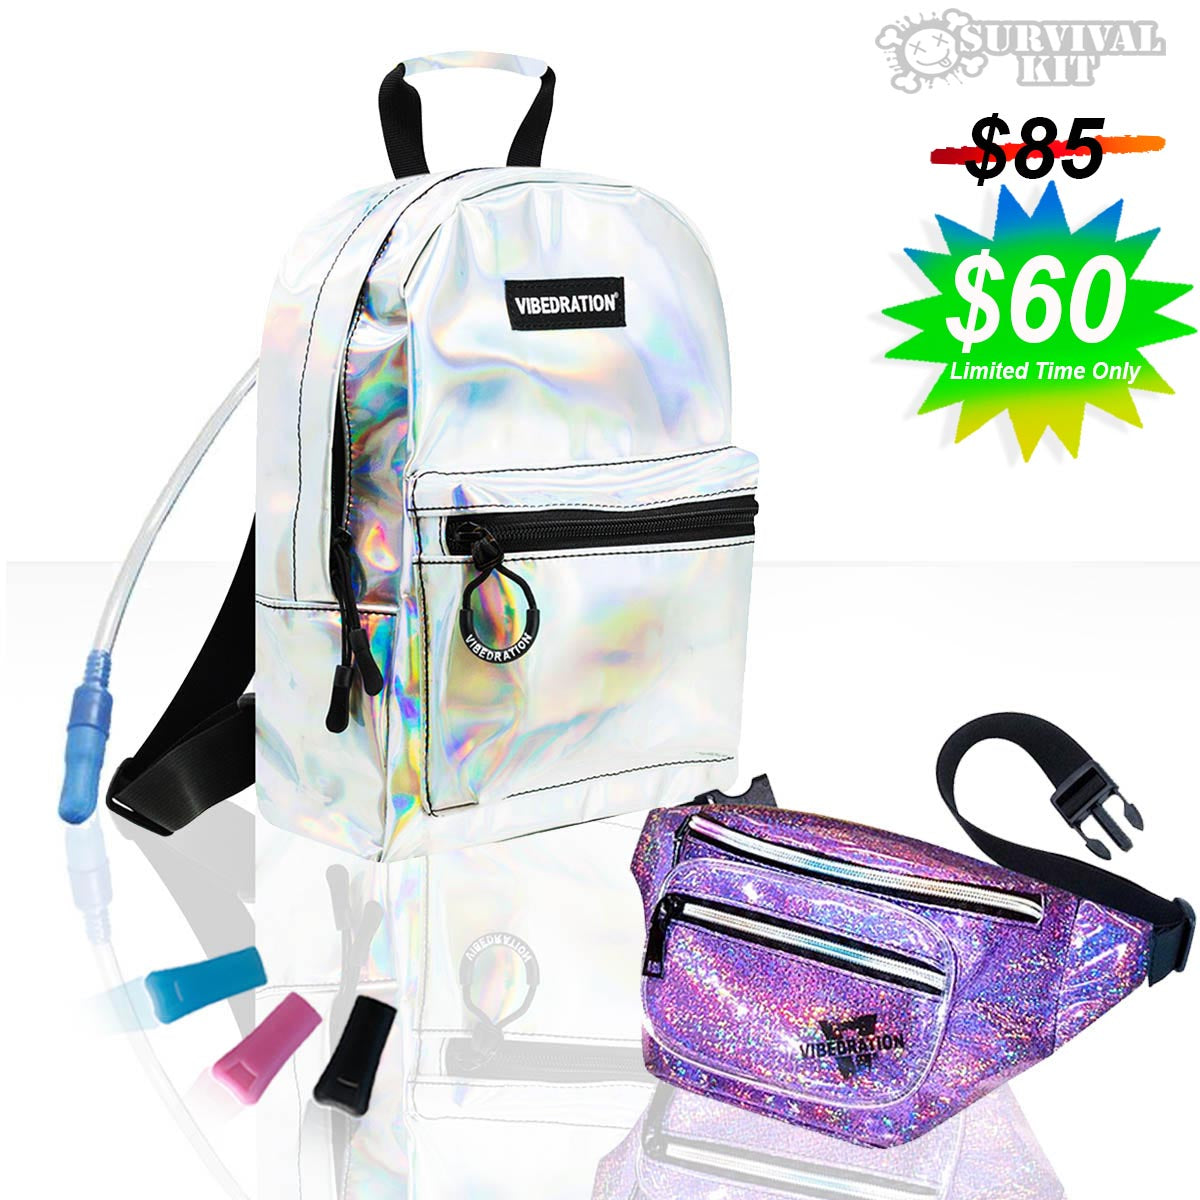 Festival Survival Kit includes Silver Holographic Mini Backpack and Fanny Pack